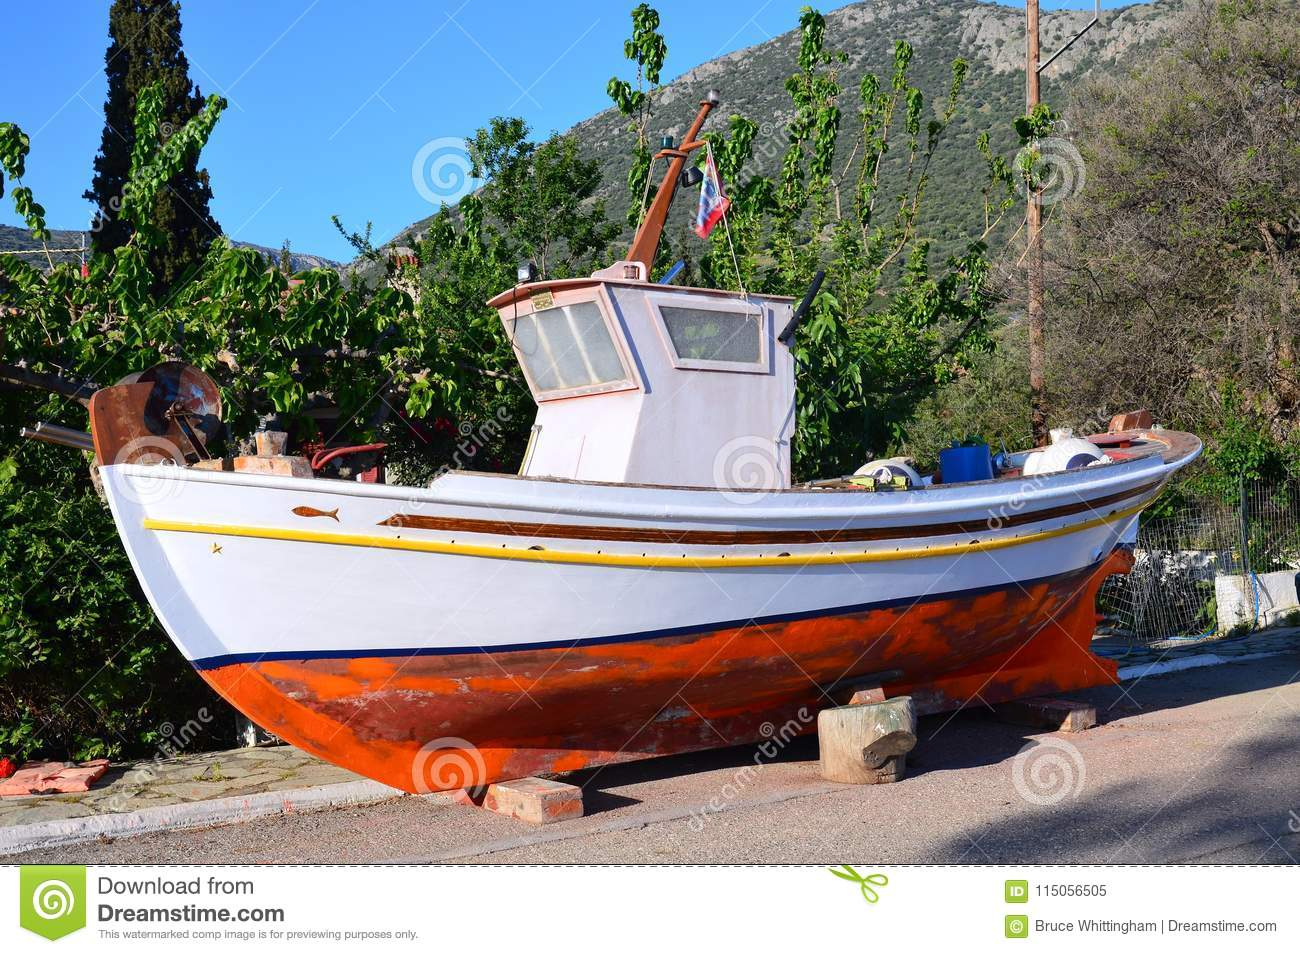 Download Maintenance On Greek Wooden Fishing Boat, Greece Stock Image - Image of cleaning, small: 115056505